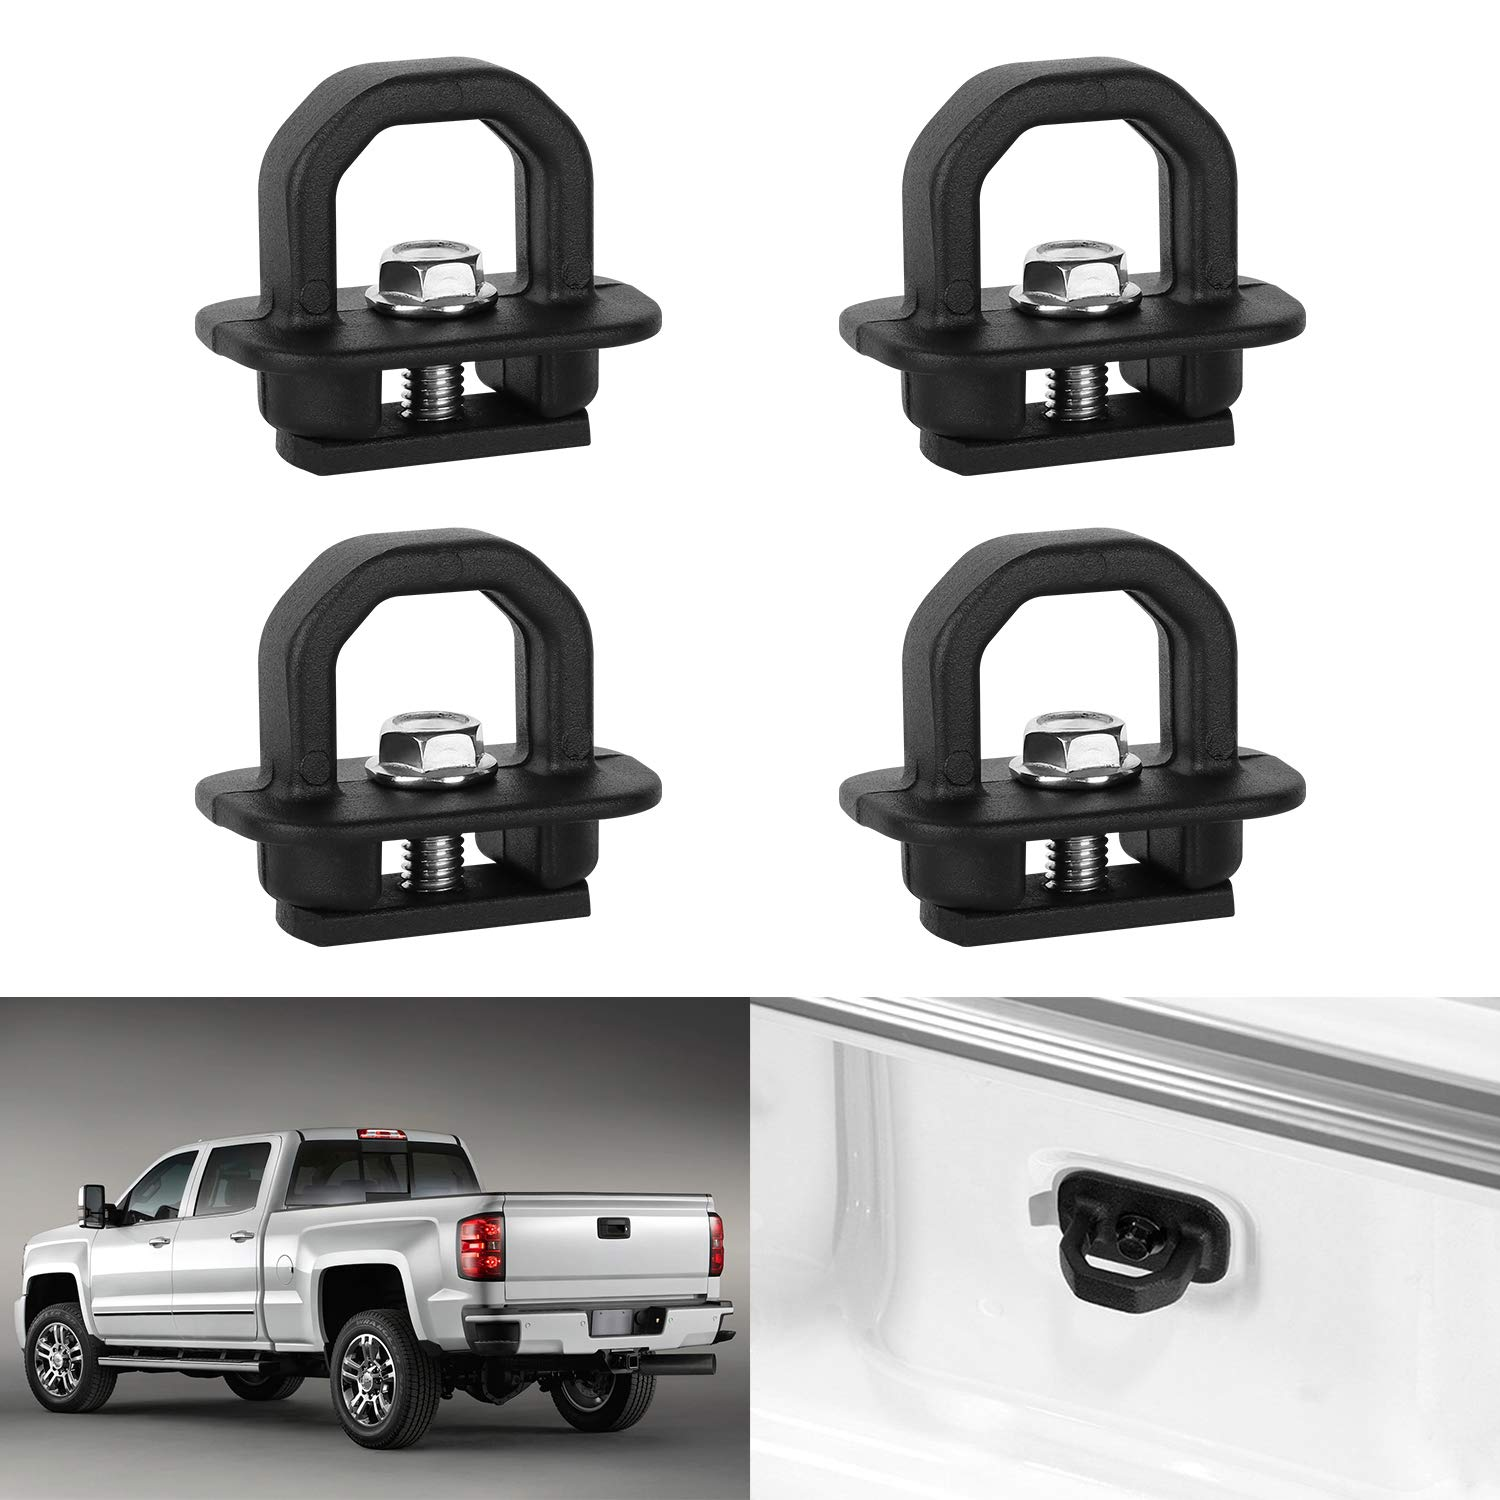 EBESTauto Truck Bed Side Wall Anchors 4Pcs Set Tie Downs Anchor Fits for 07-18 Chevy Silverado GMC Sierra 15-18 Chevy Colorado GMC Canyon